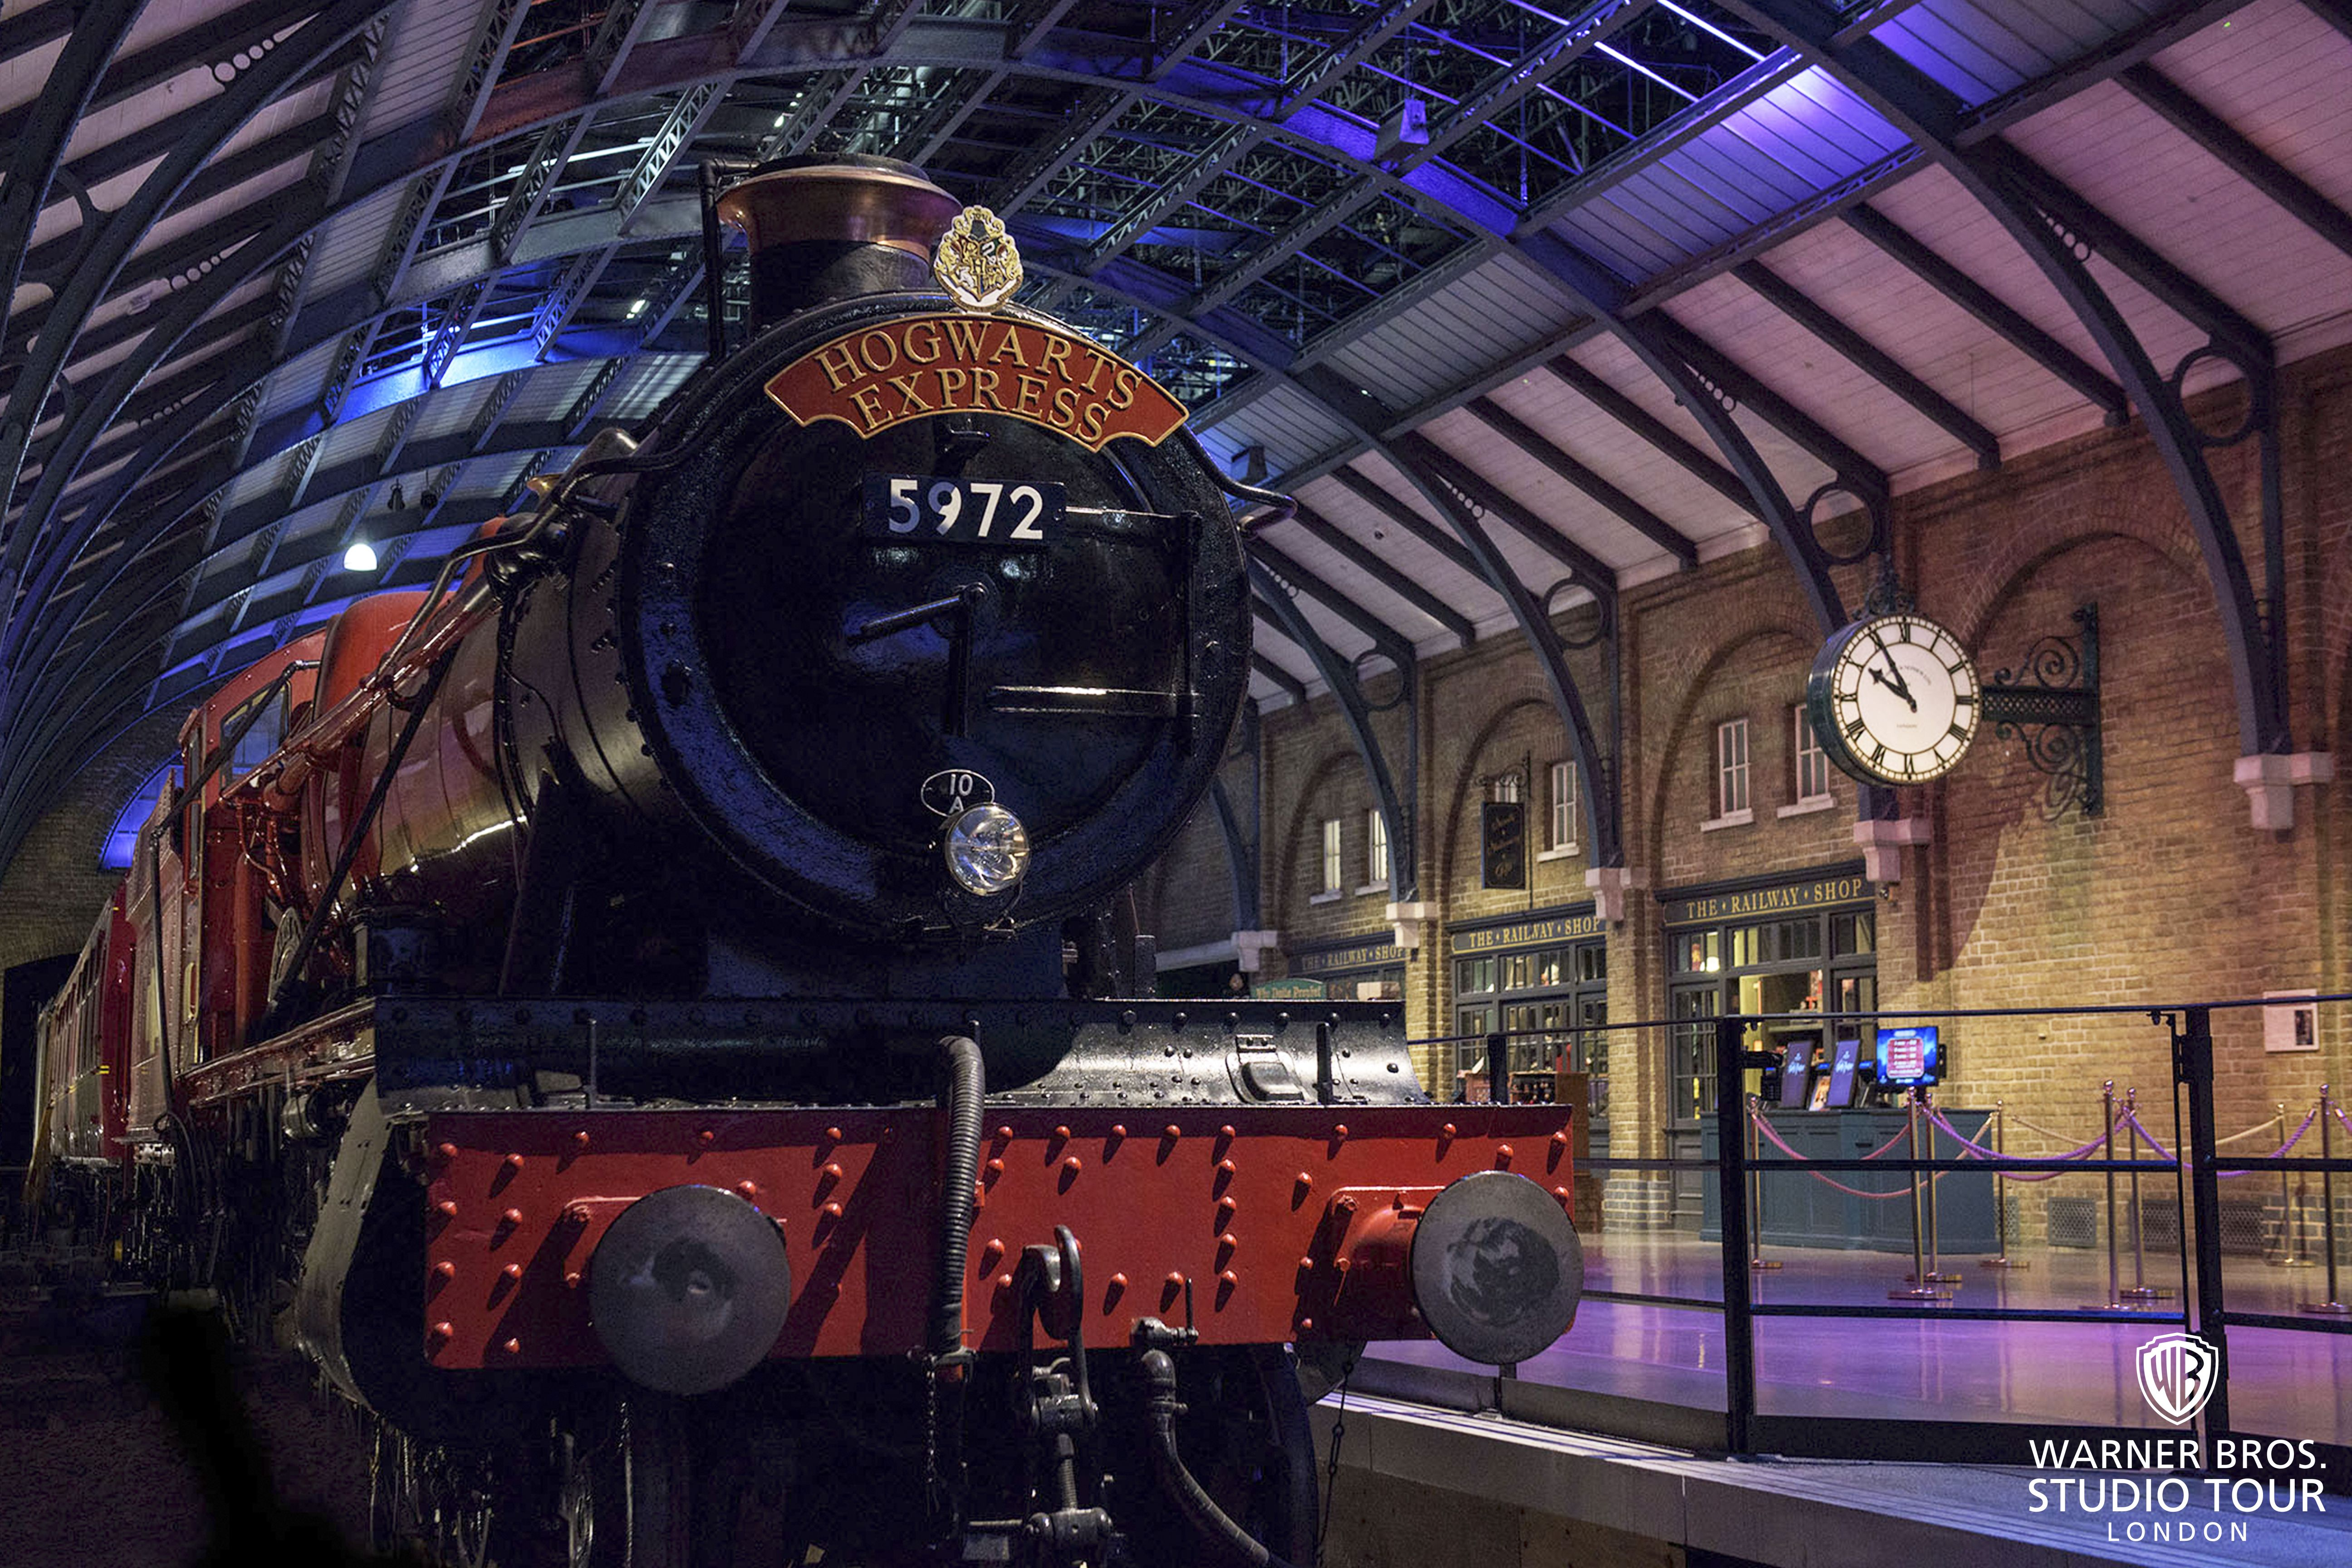 0fe9c63b2db07b9f6175d9abb4a0da61 - How Do I Get To Harry Potter World From London By Train